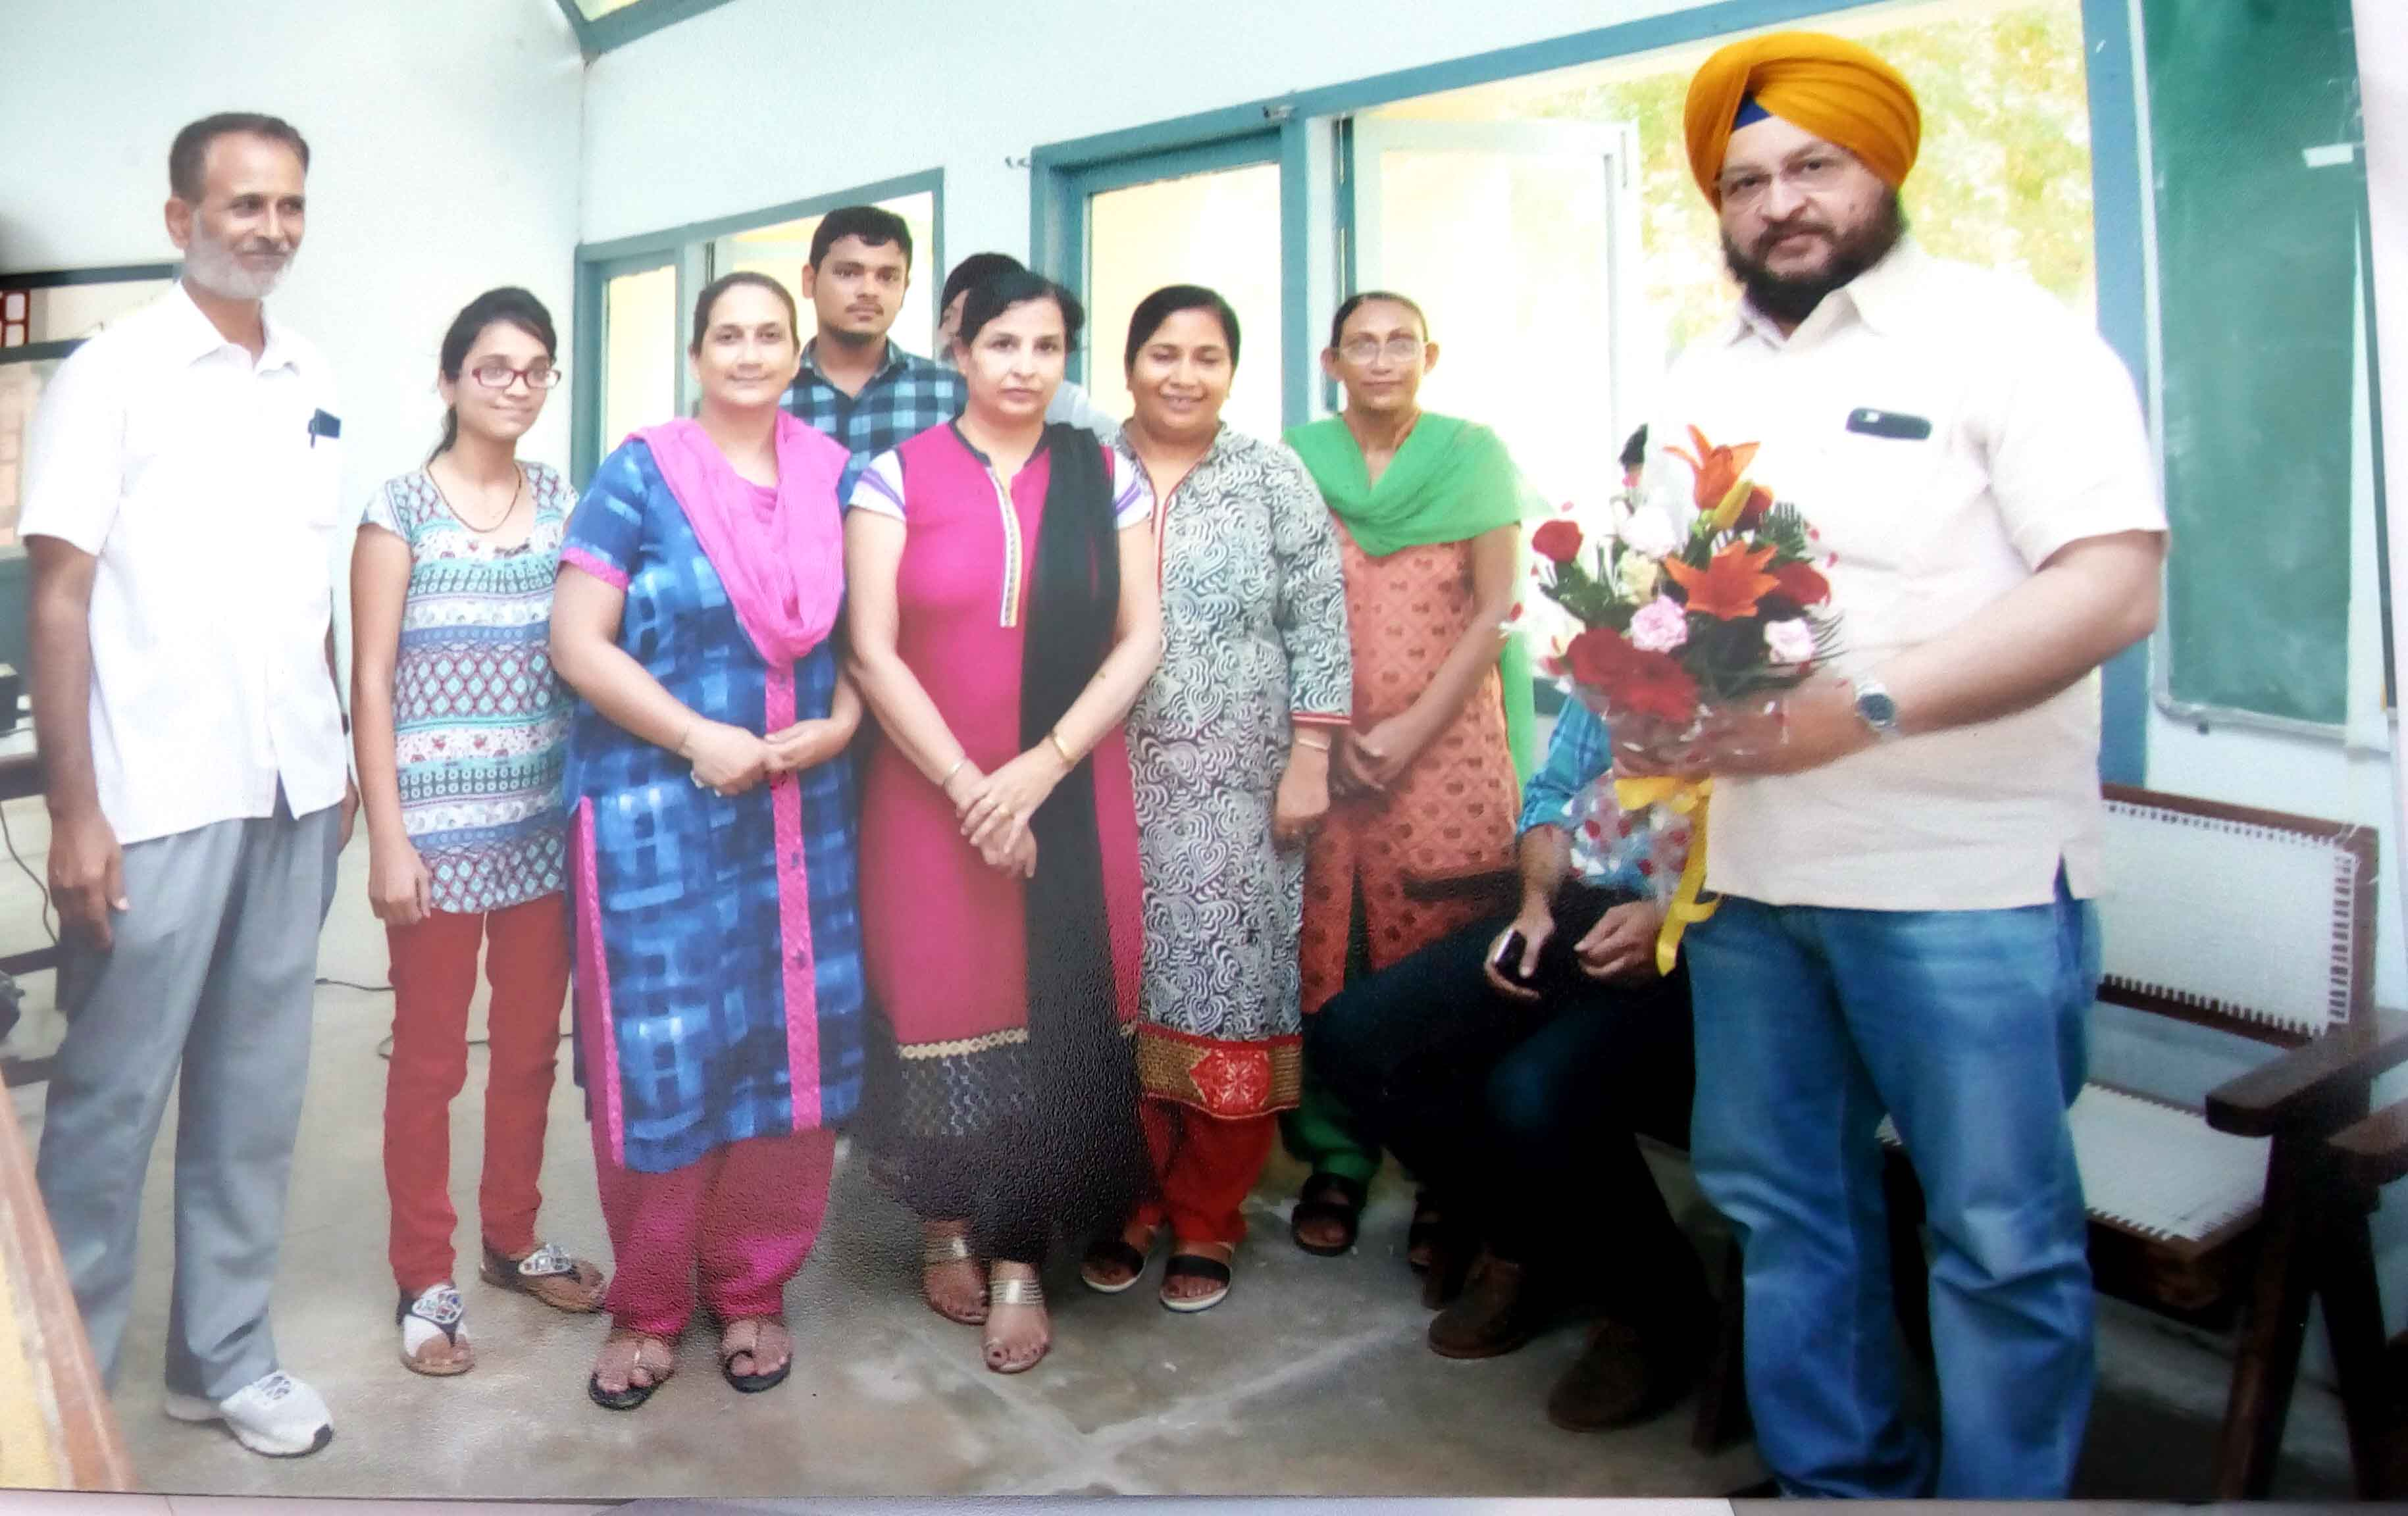 Bouquet presentation to Dr. Sarbjit Singh, District Governor Rotory District 3070